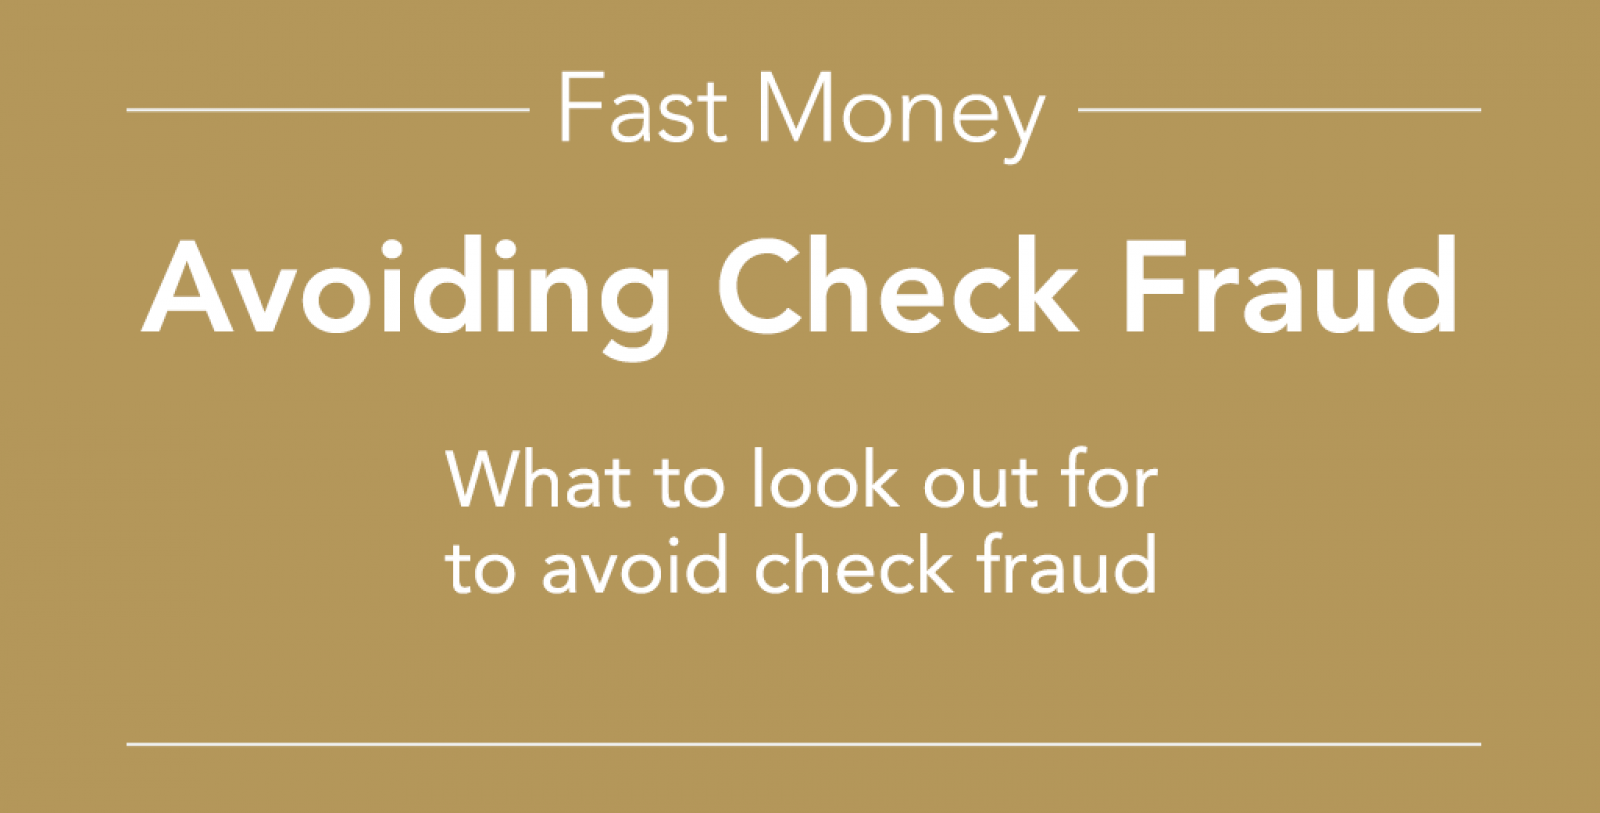 Avoiding Check Fraud